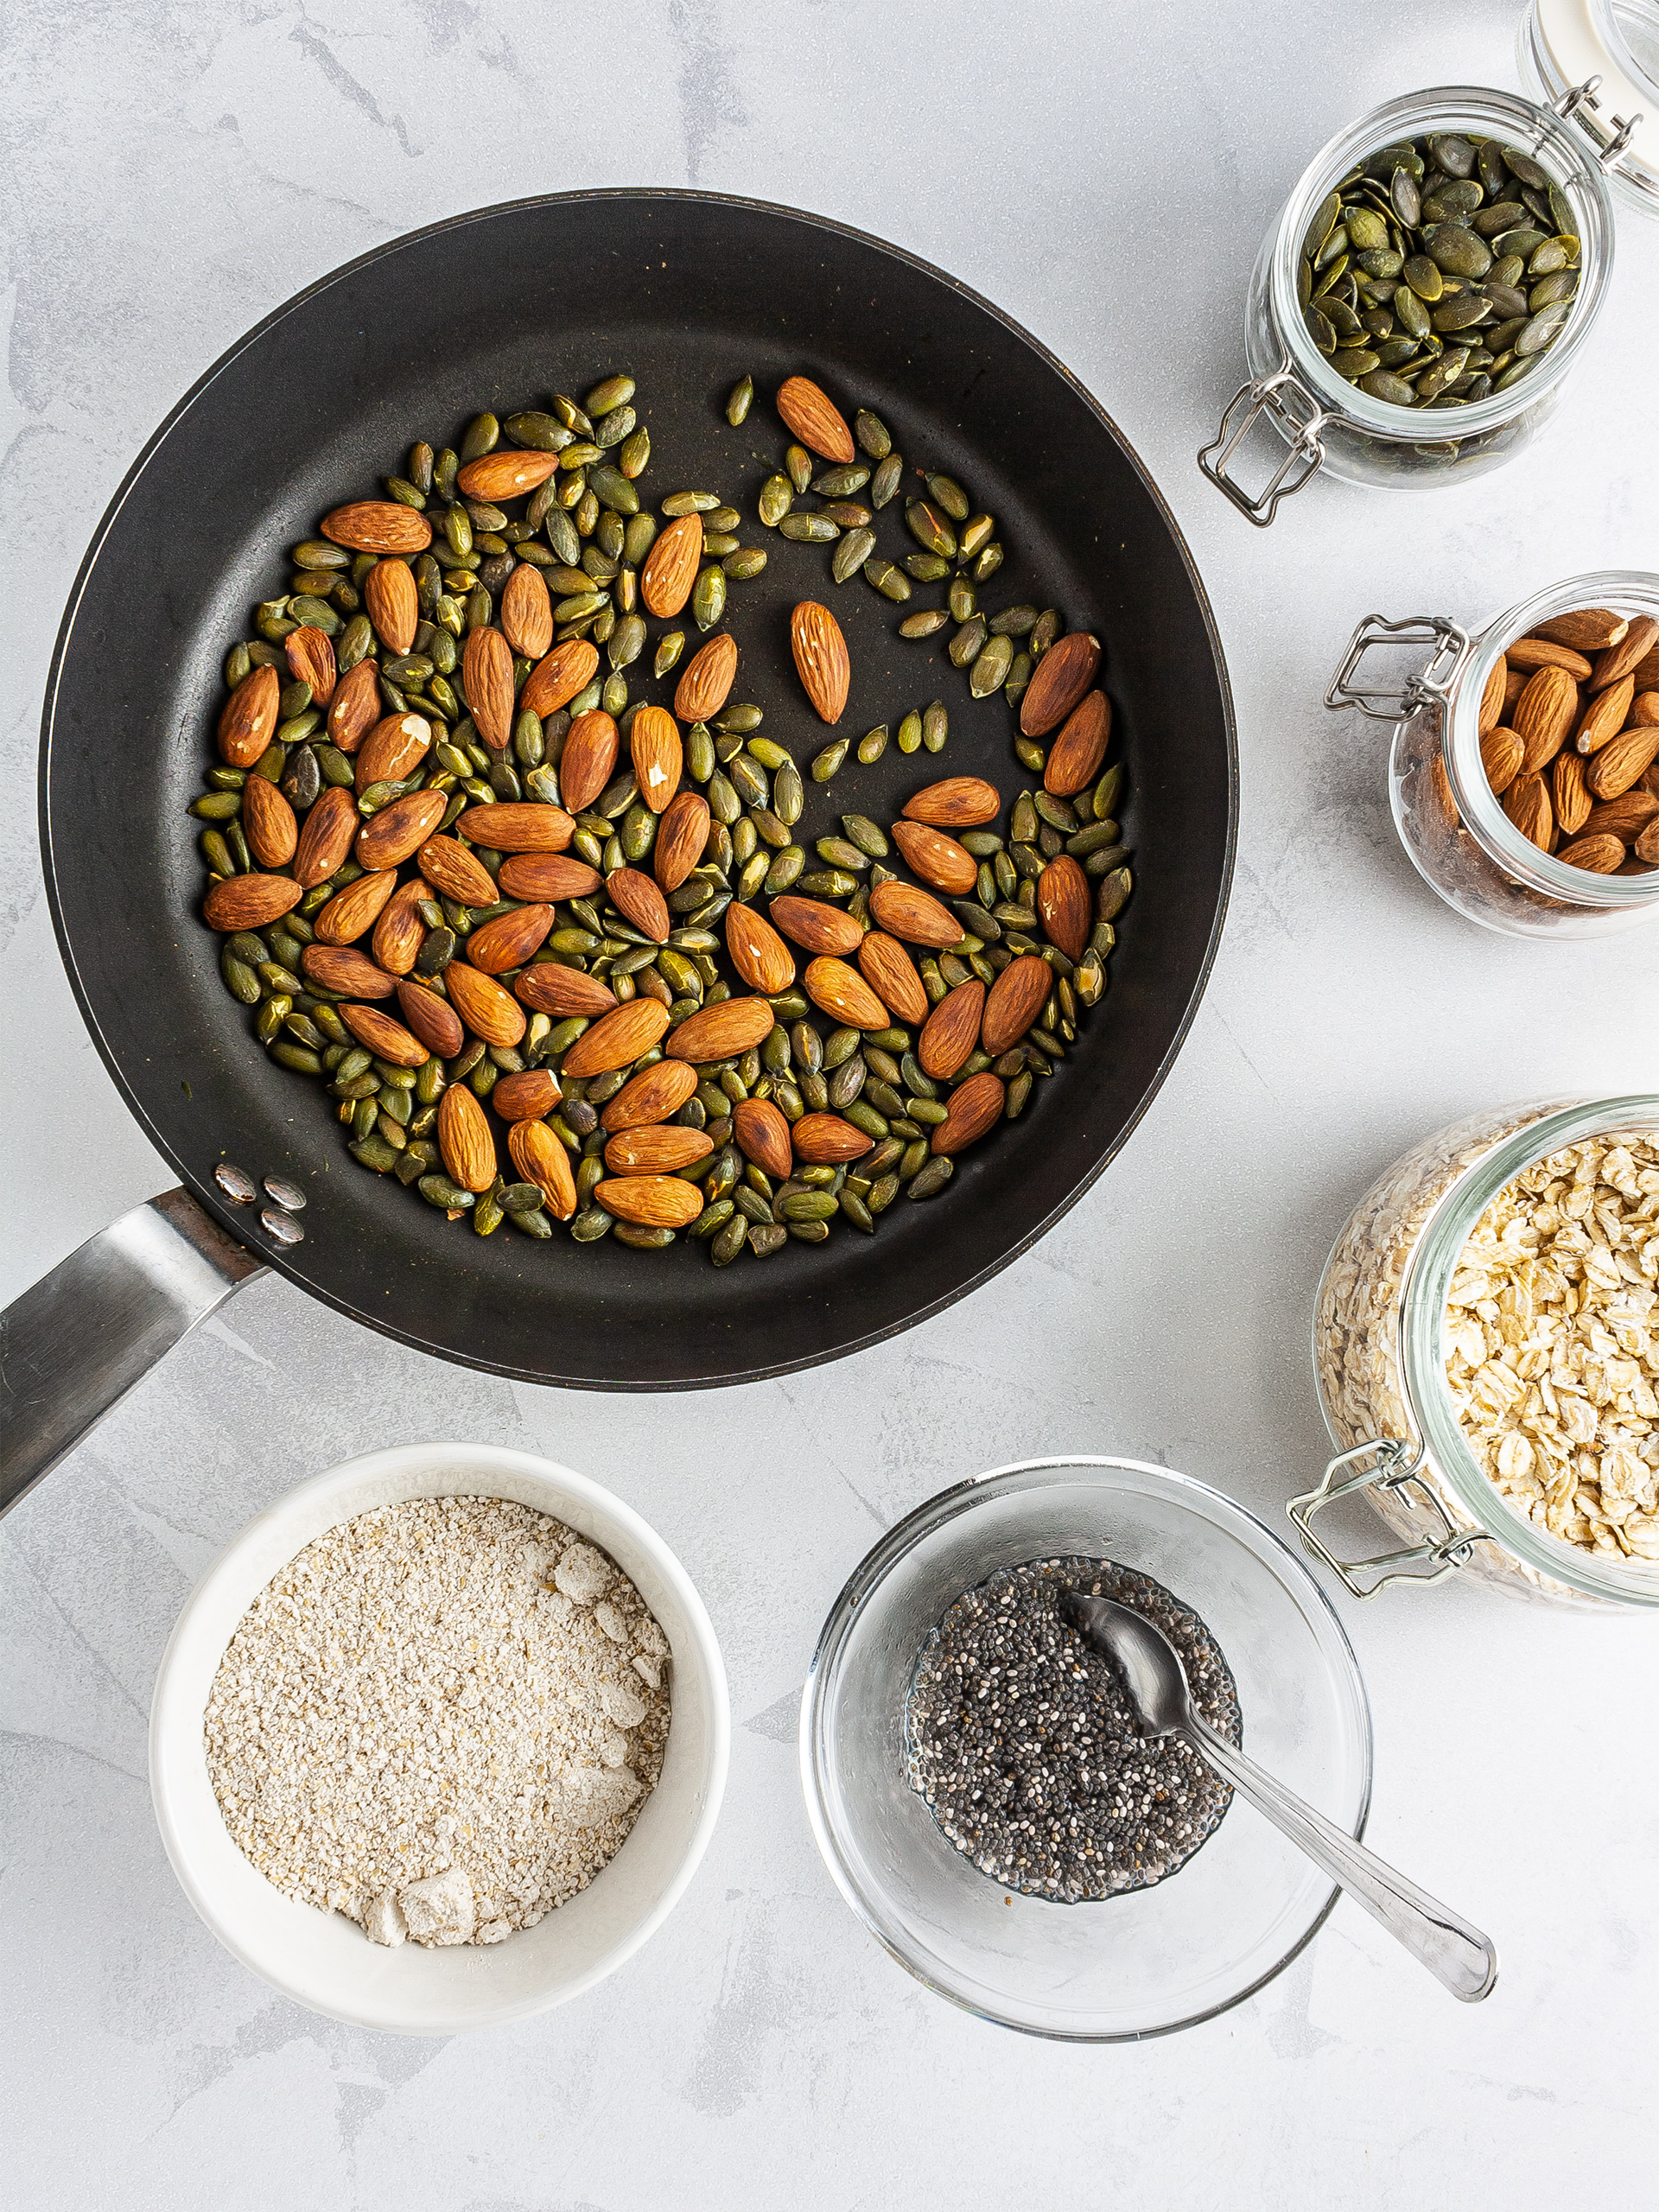 Toasted almond and pumpkin seeds, ground oats, and chia egg